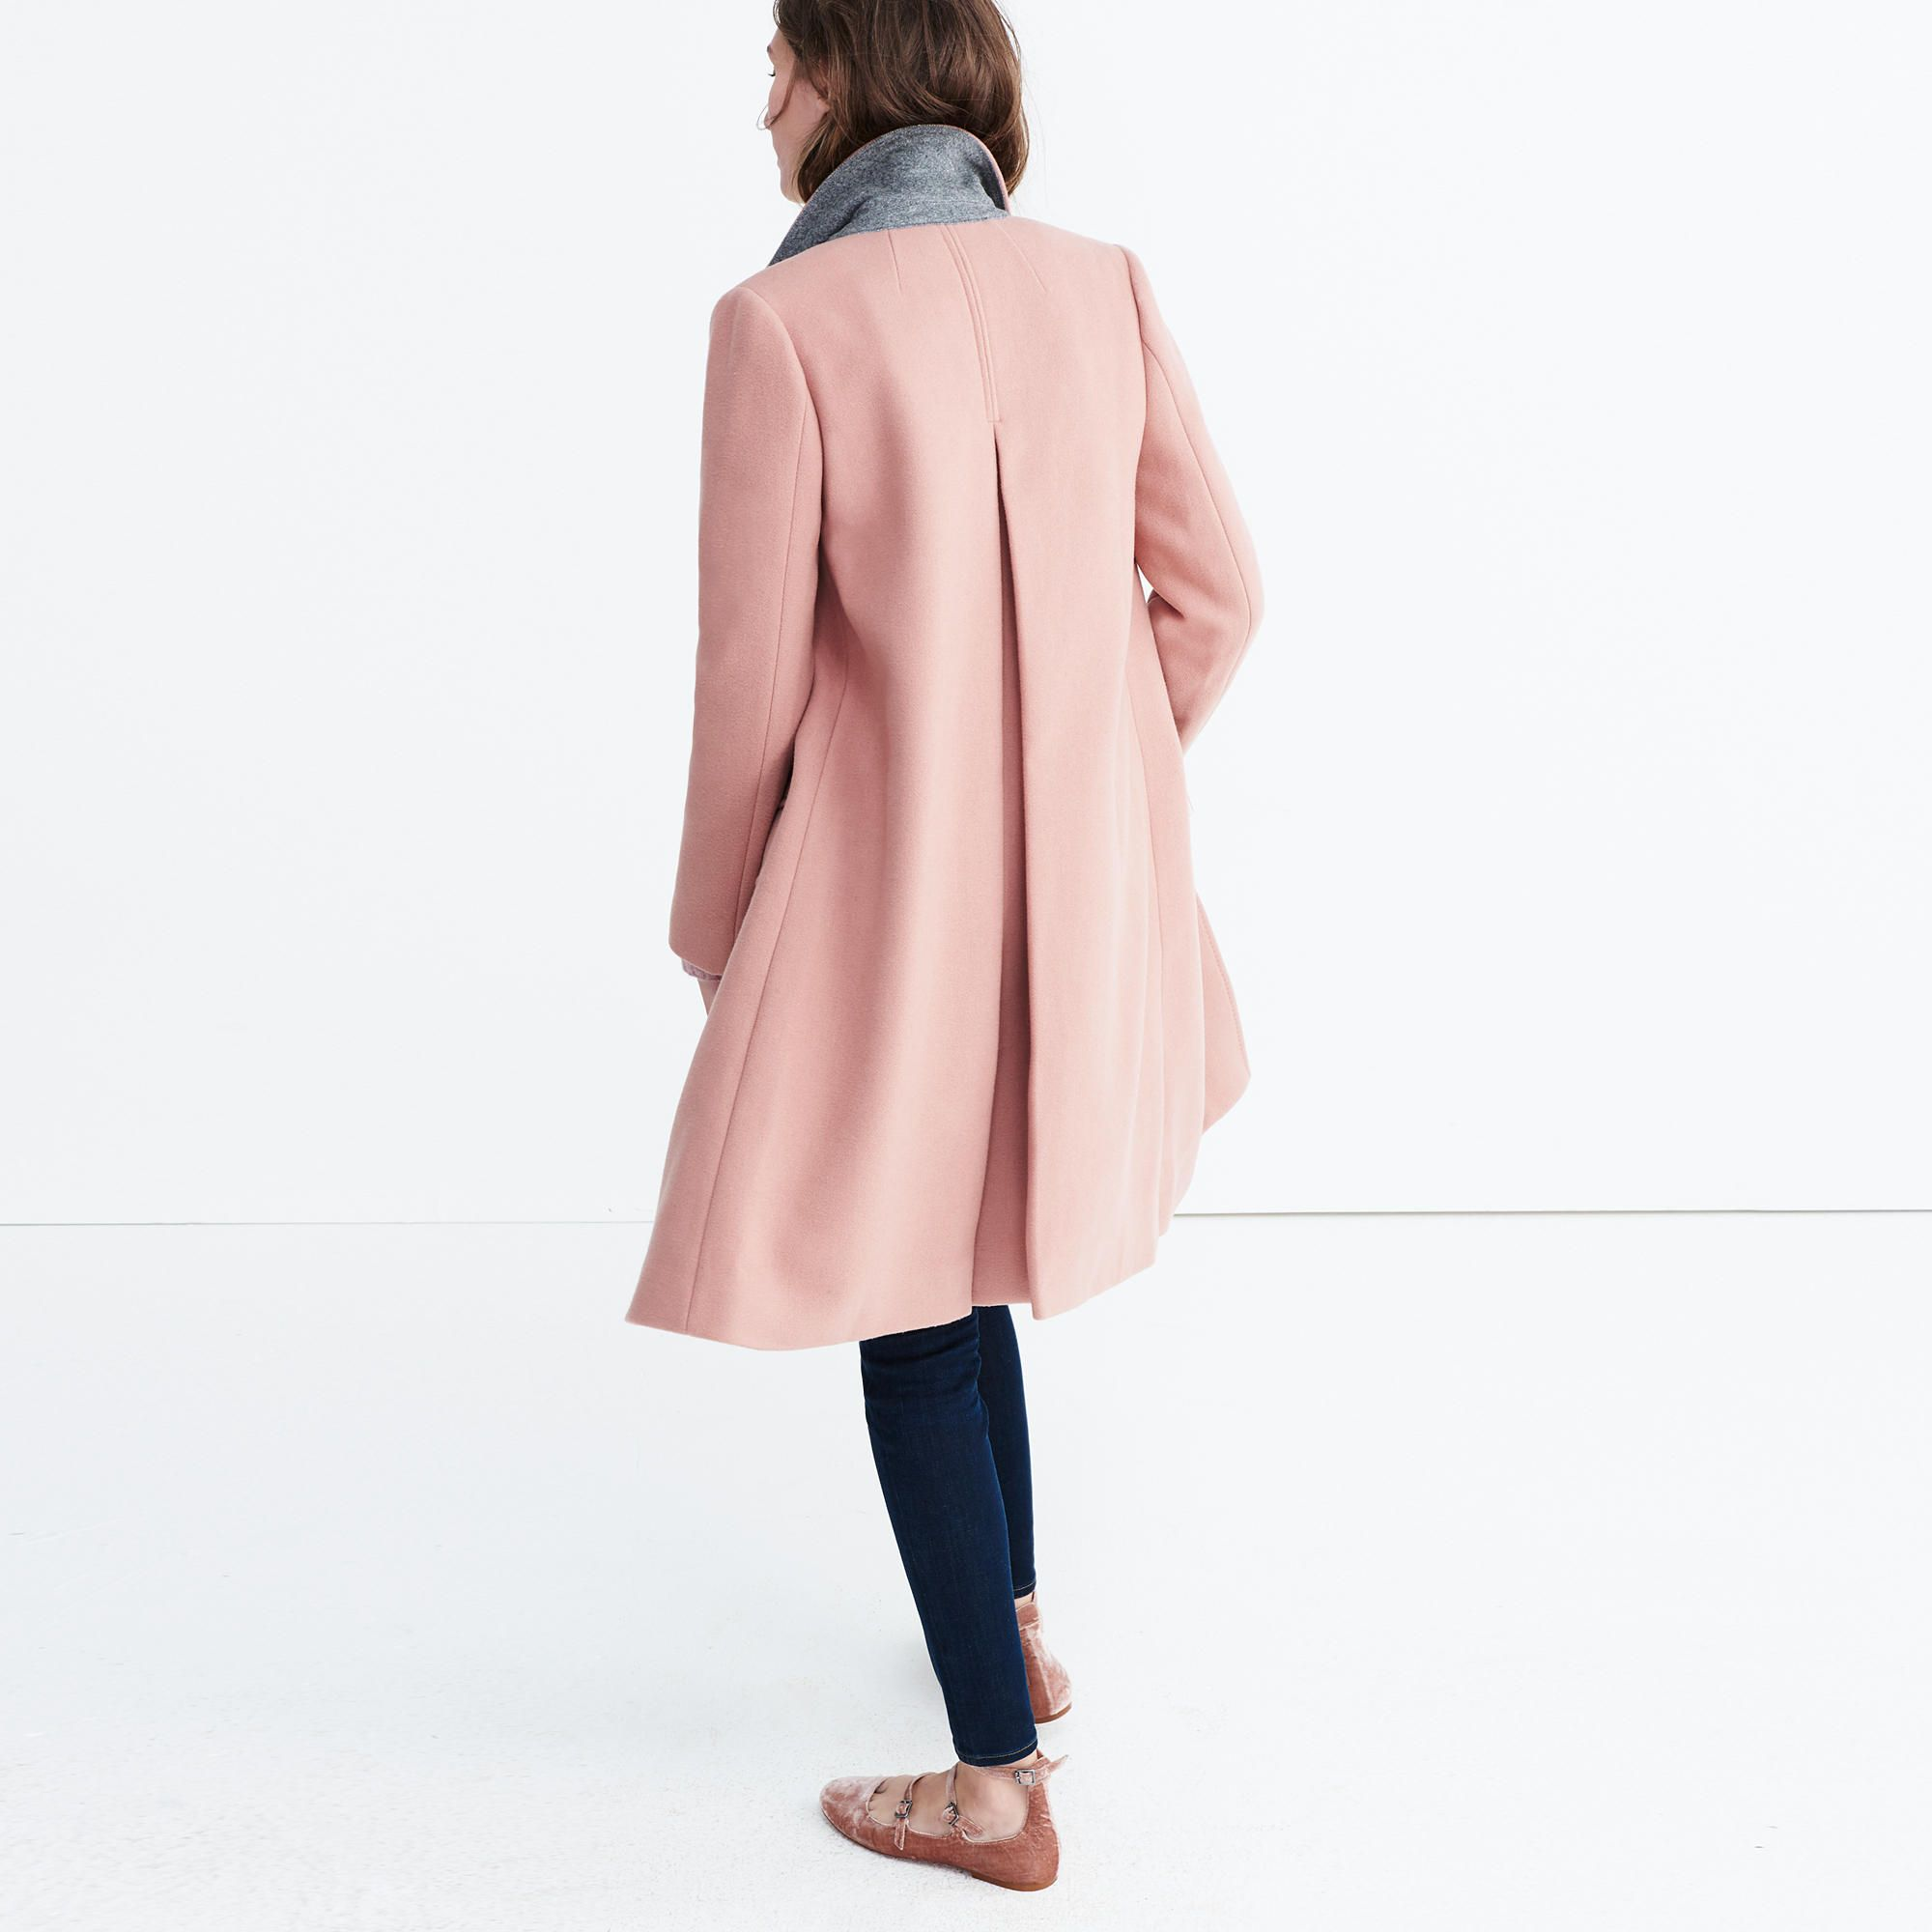 Teatro Swing Coat in Old Rose | Coats, Jackets and Teatro